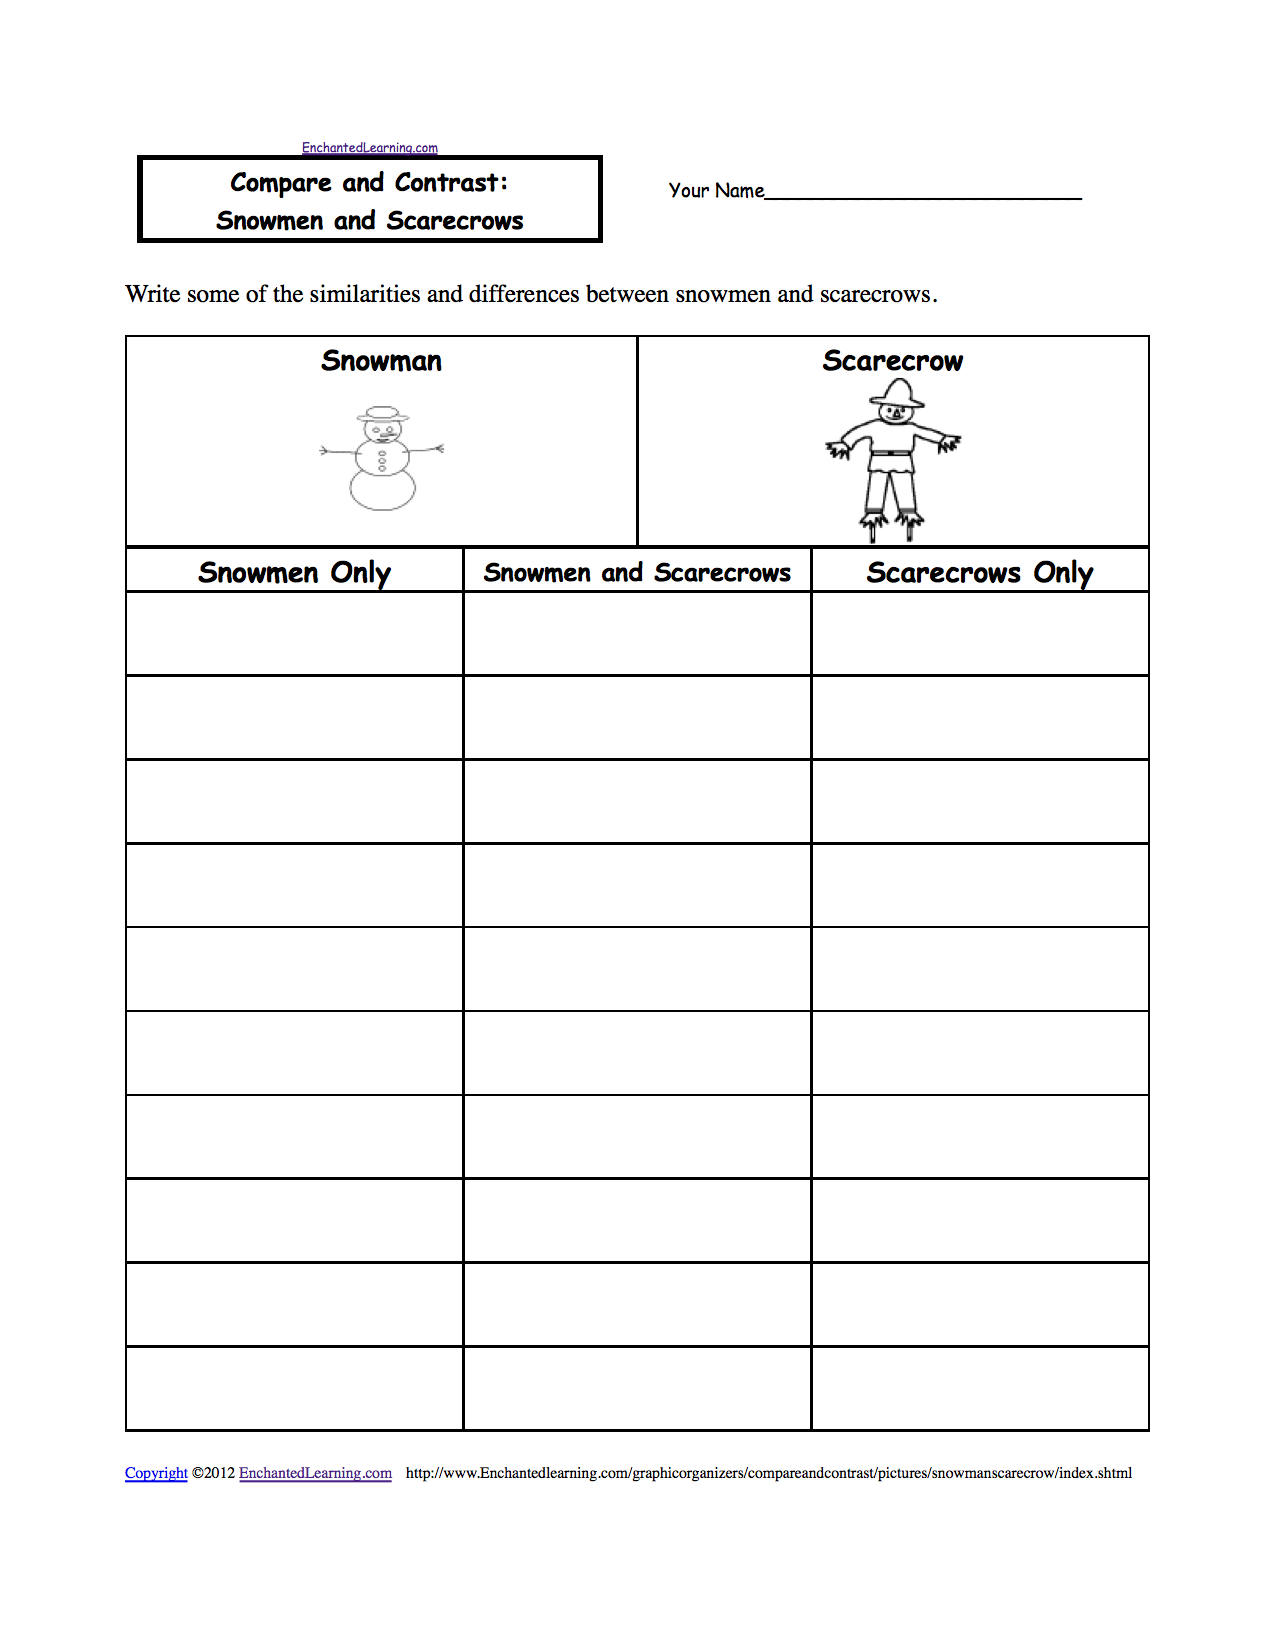 Printables Compare And Contrast Worksheets 4th Grade compare and contrast worksheets to print enchantedlearning com snowmen scarecrows